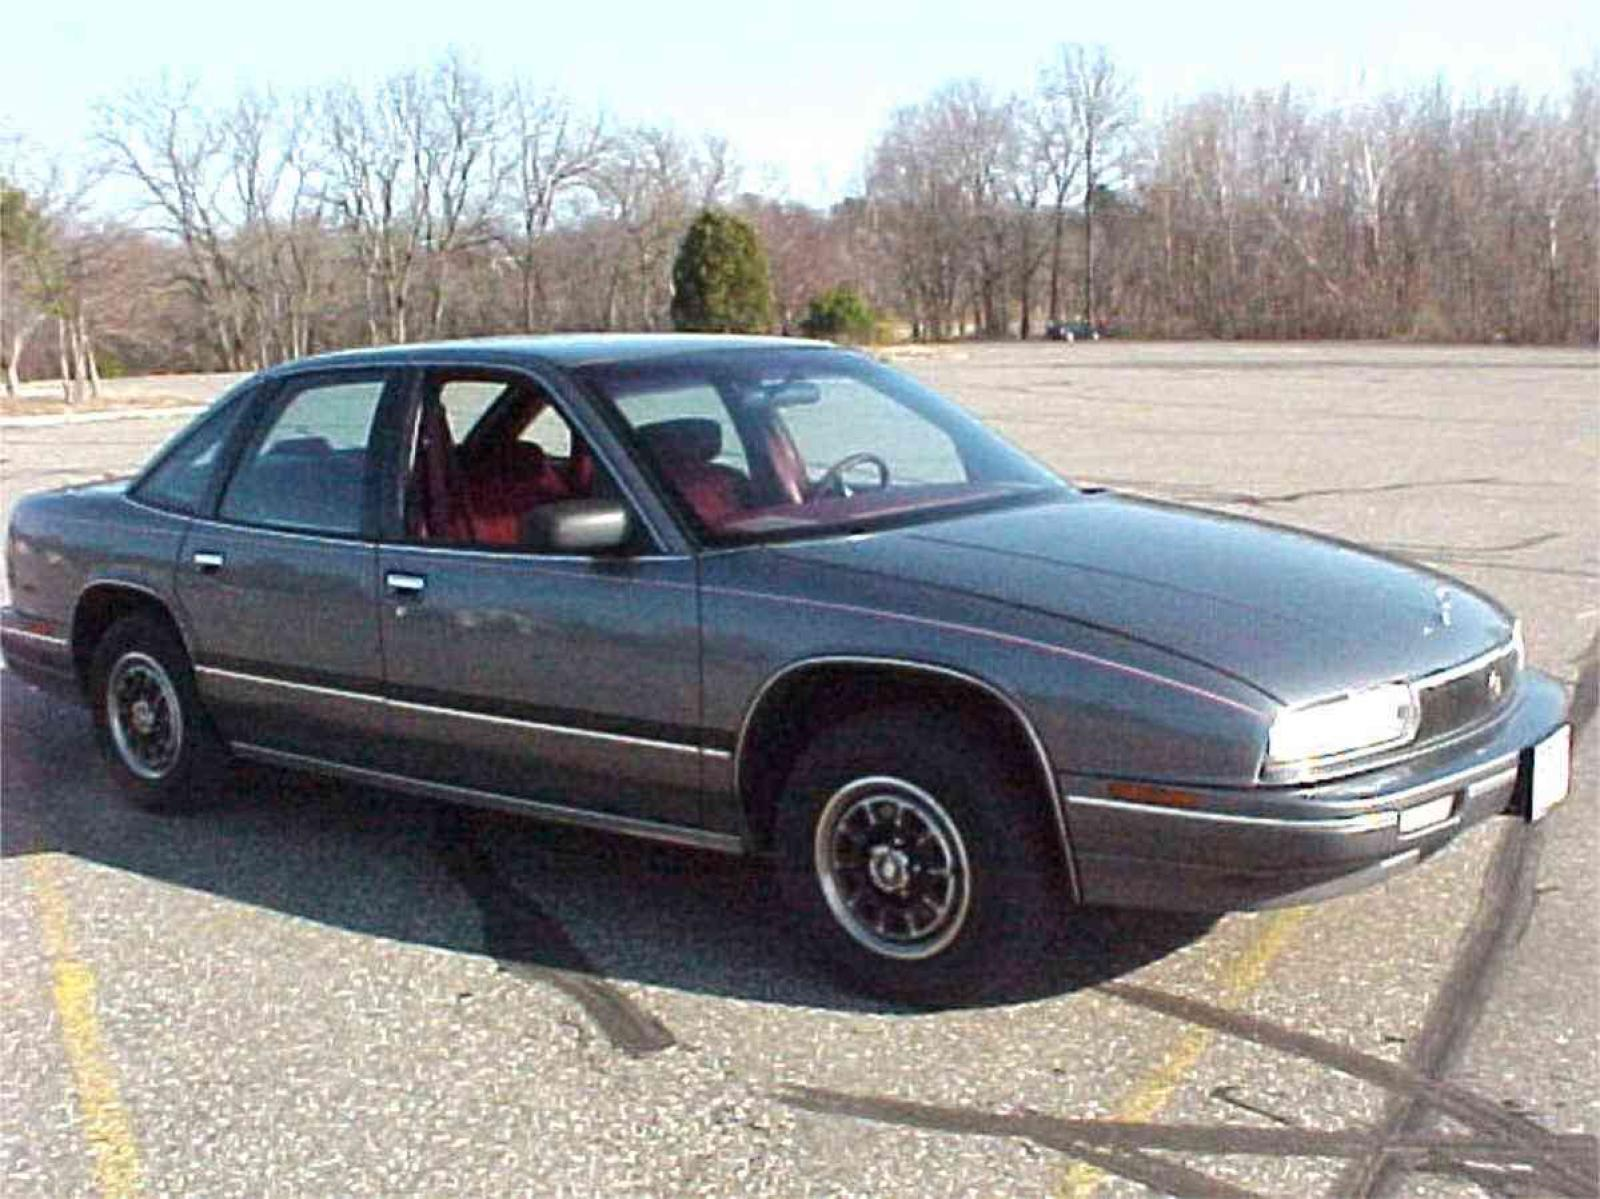 1995 Buick Riviera Supercharged Diagram in addition 2003 Ford Explorer Brake Lights Wont Turn Off likewise Where Is The Knock Sensor On A 2000 Chevy S10 2 2 4 Cyl  733058 in addition RepairGuideContent in addition Discussion D571 ds660253. on wiring diagram for 1997 buick regal gs